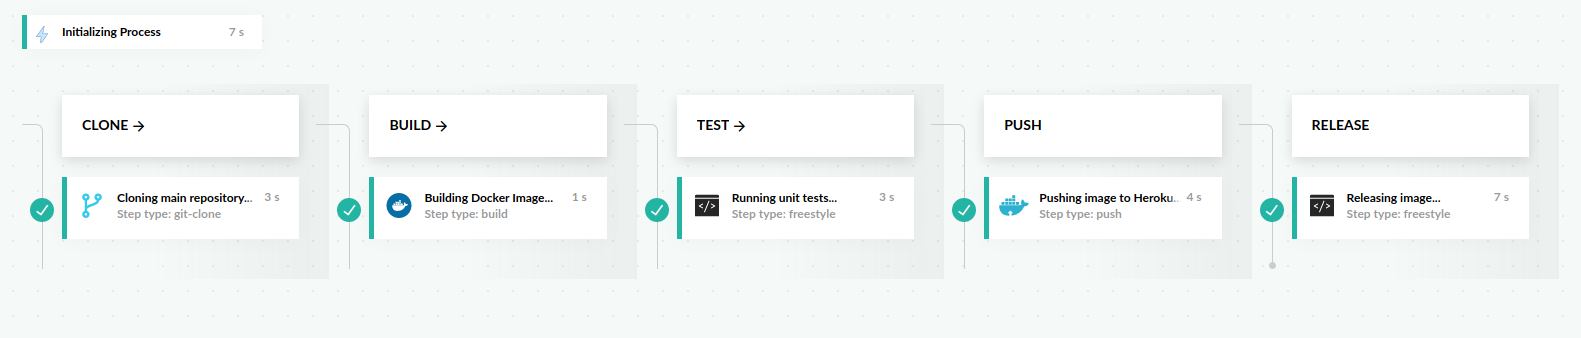 Codefresh UI Pipeline View